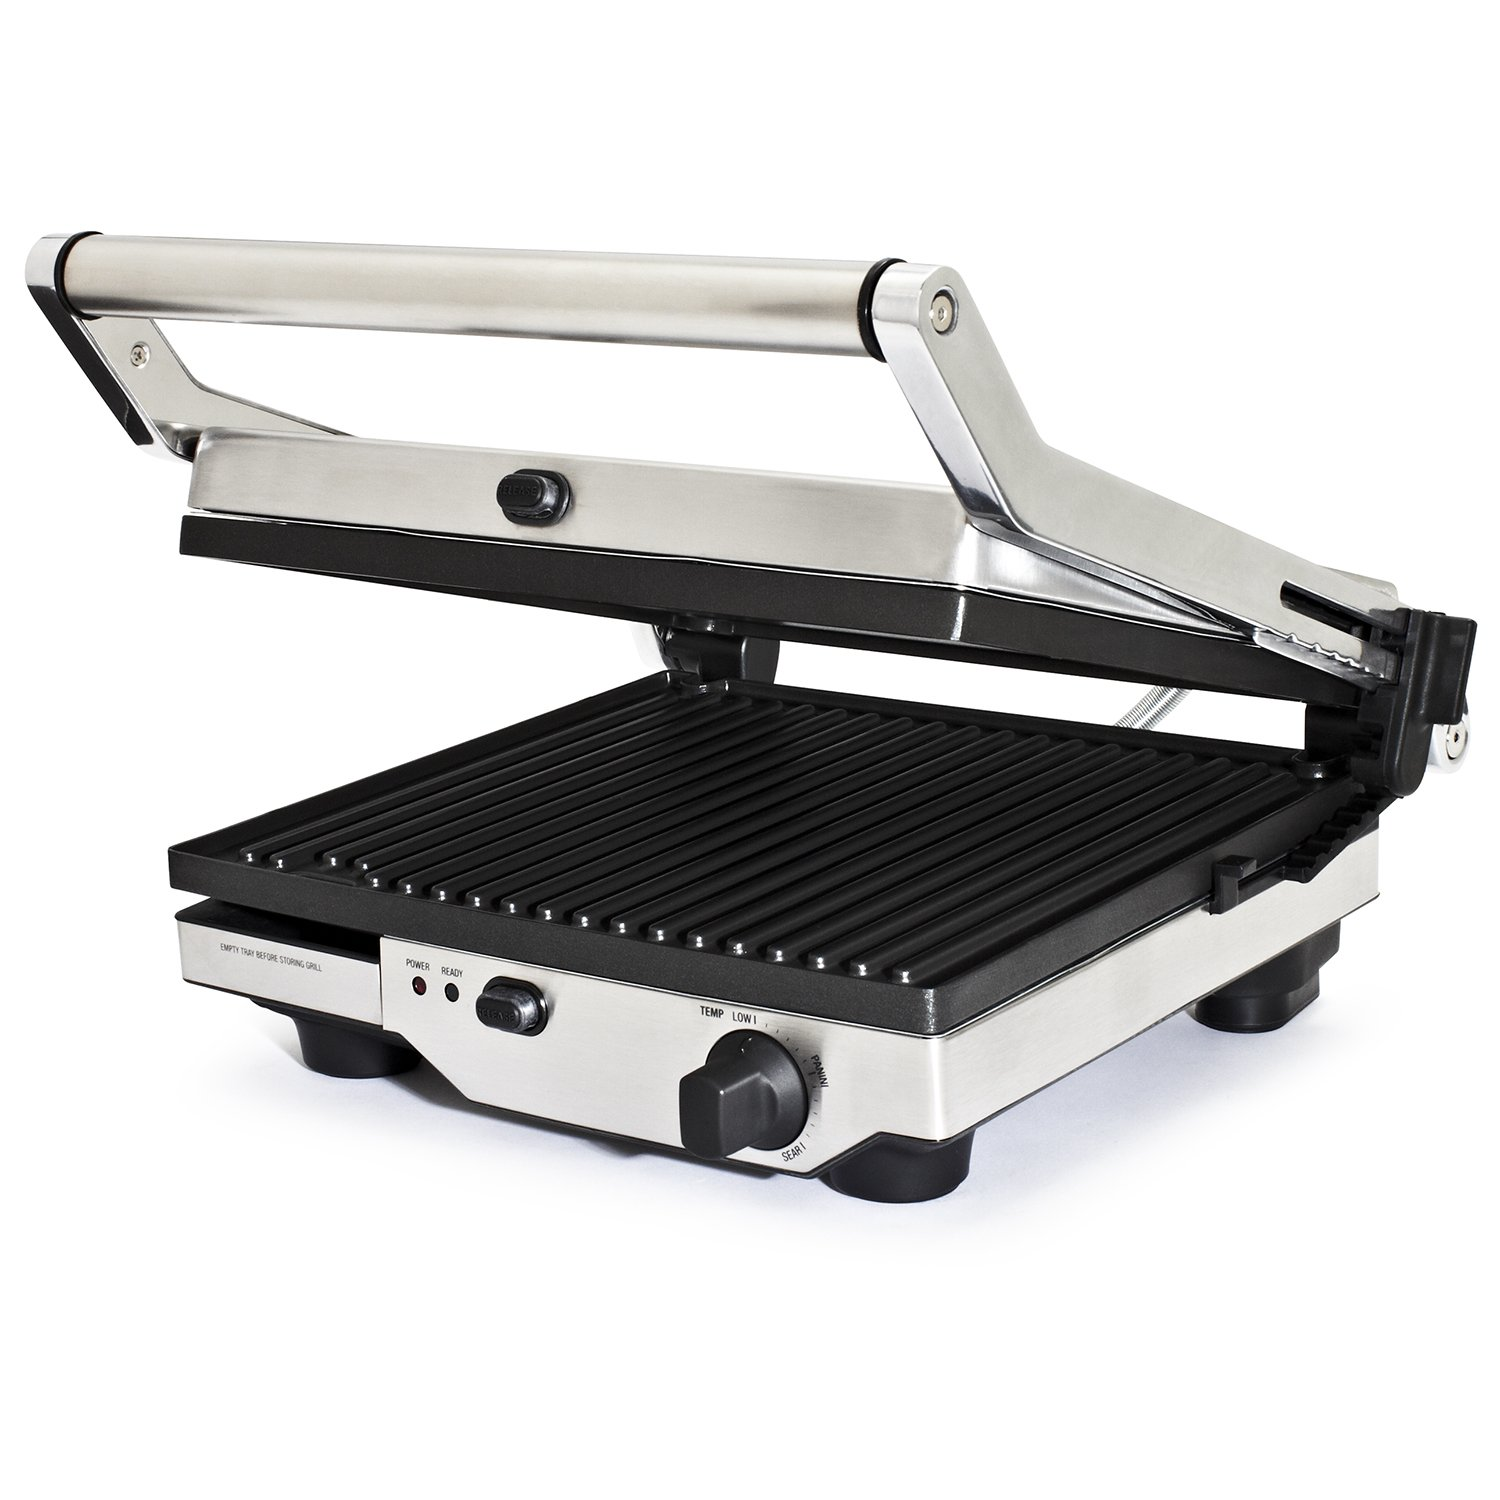 New breville quick clean removable non stick plate grill floating hinge bgr420xl ebay - Grill with removable plates ...